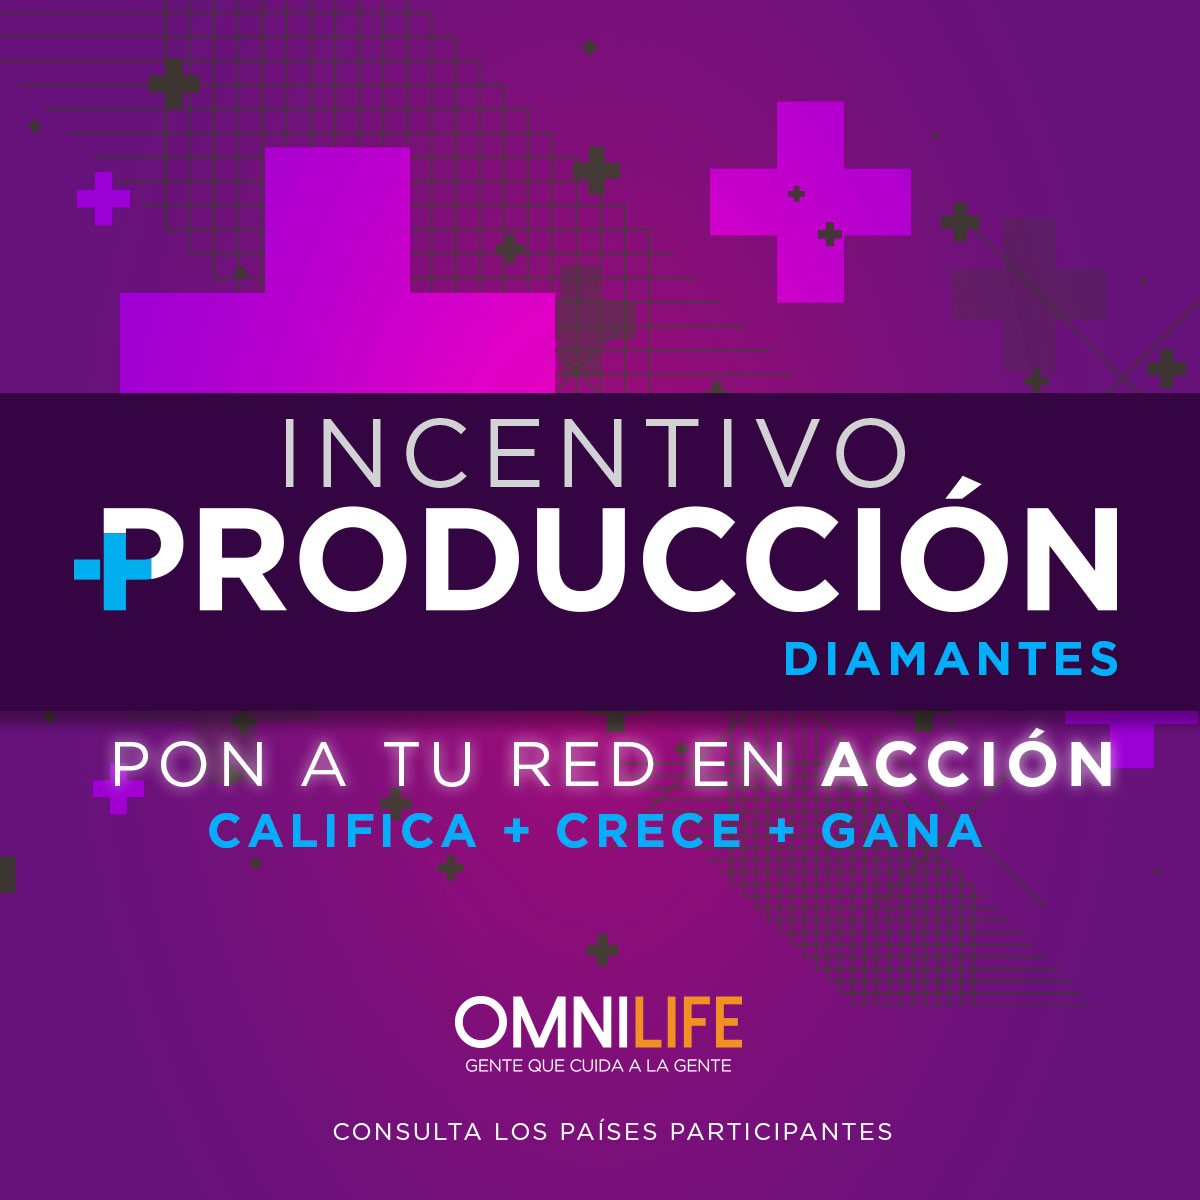 Incentivo-Produccion-Diamantes